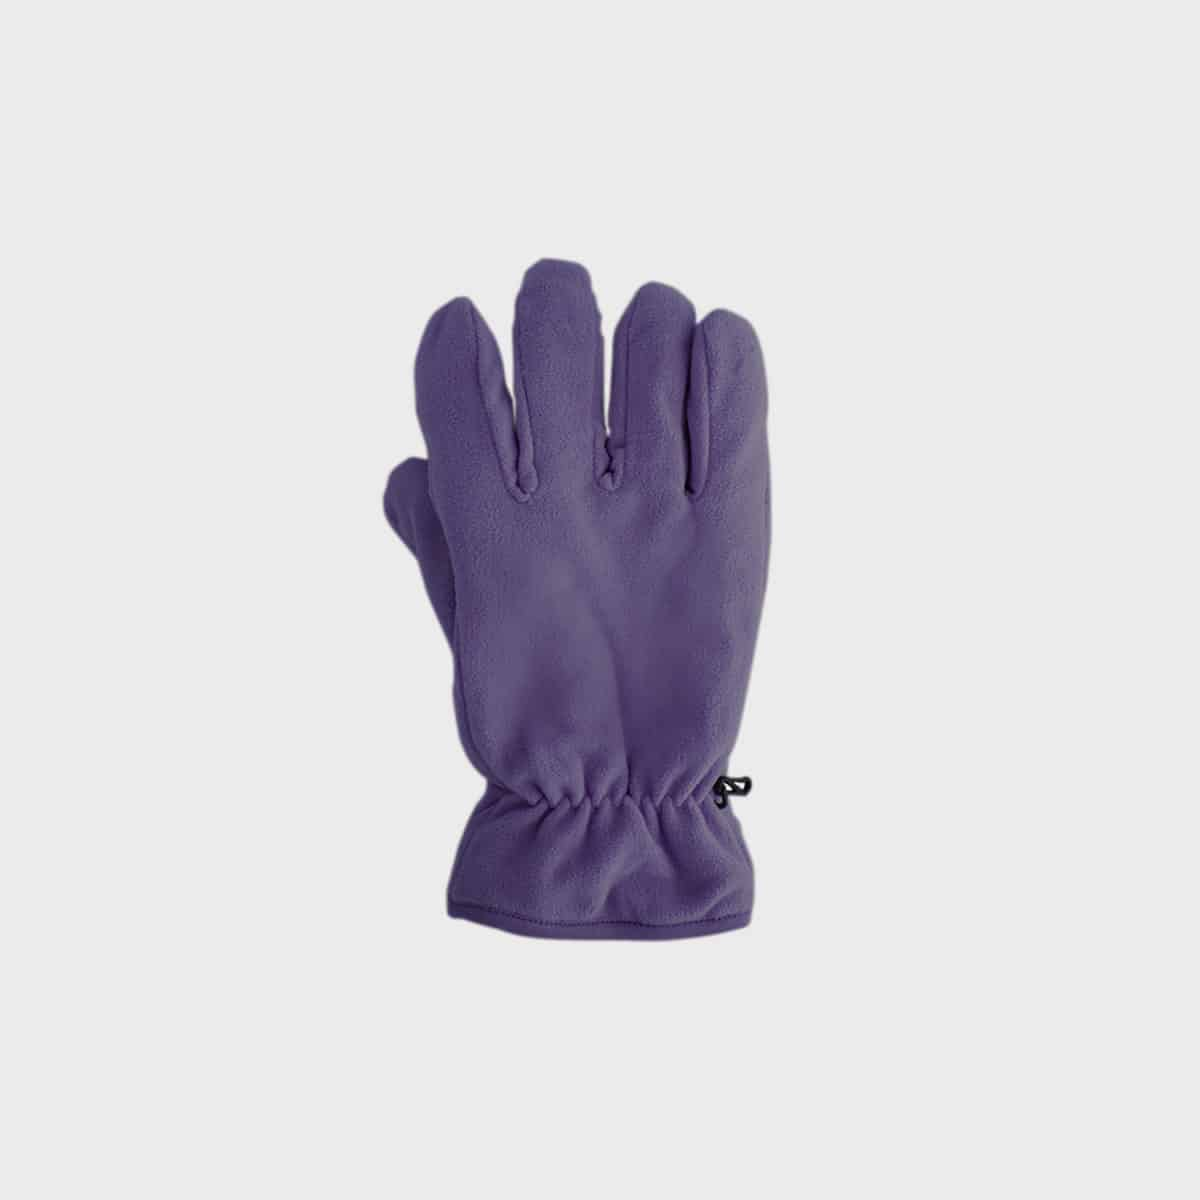 thinsulate-handschuhe-fleece-aubergine-kaufen-besticken_stickmanufaktur